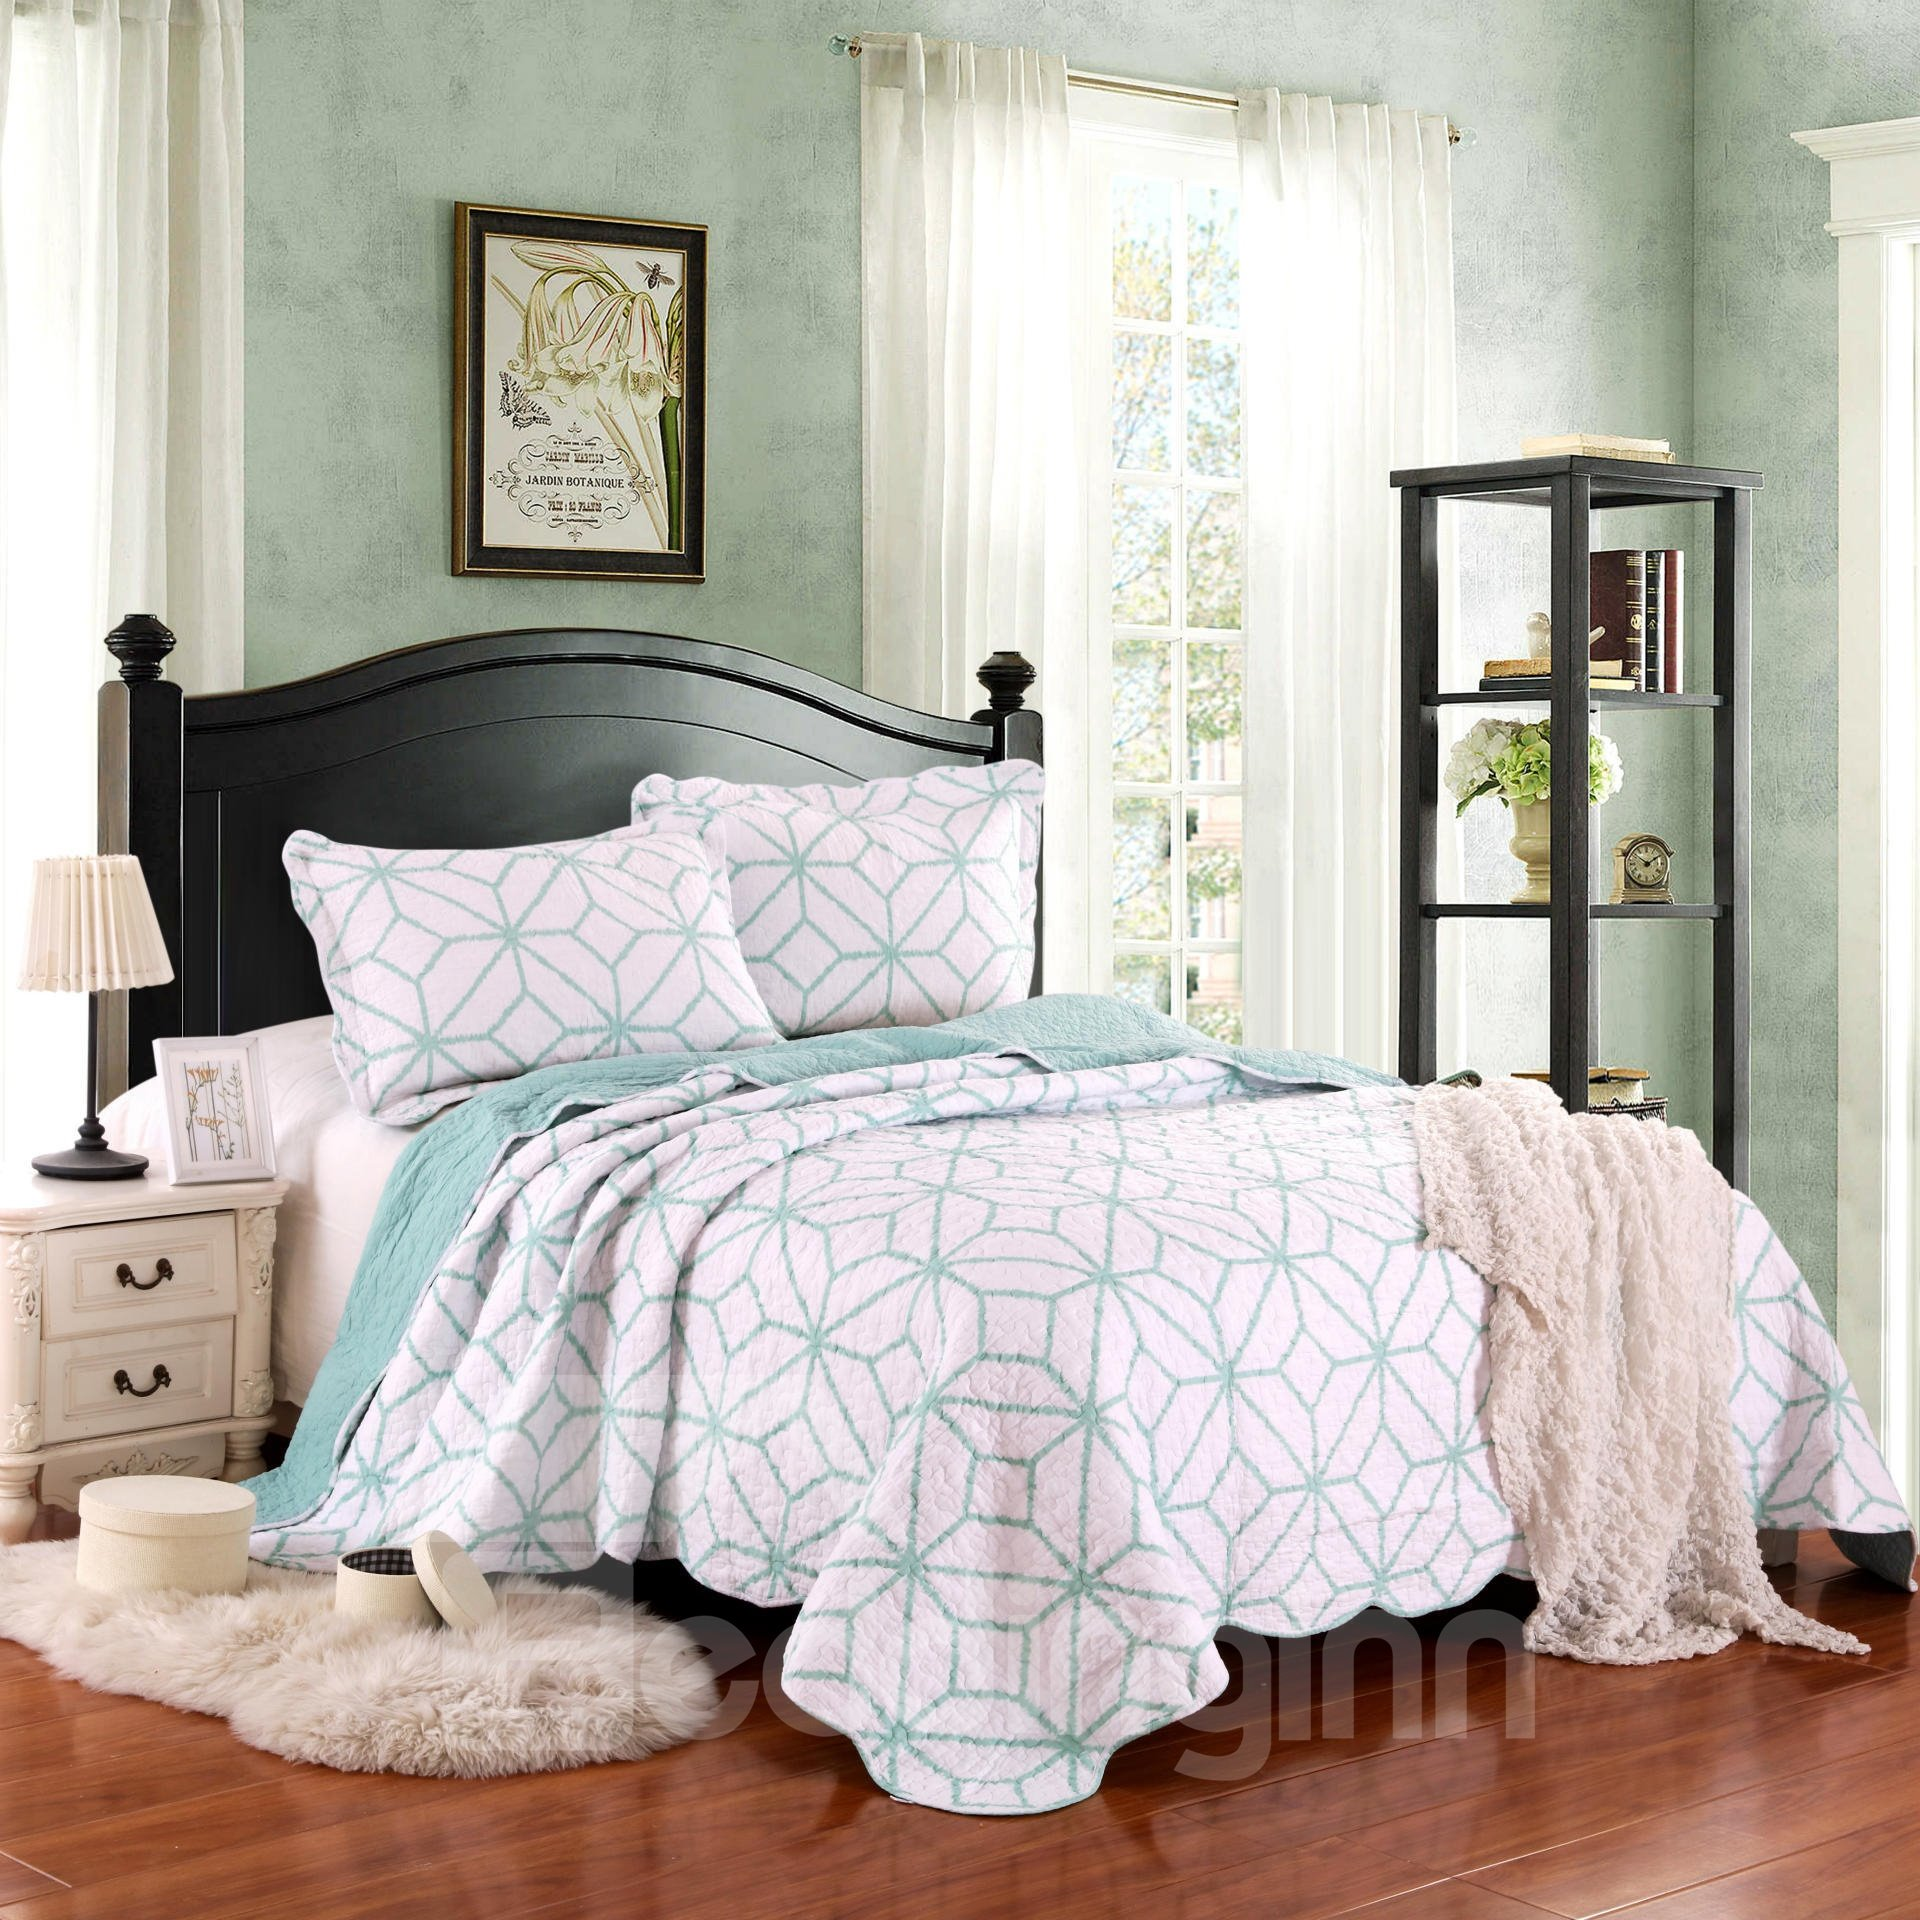 Green and White Geometric 3-Pc Bed in a Bag